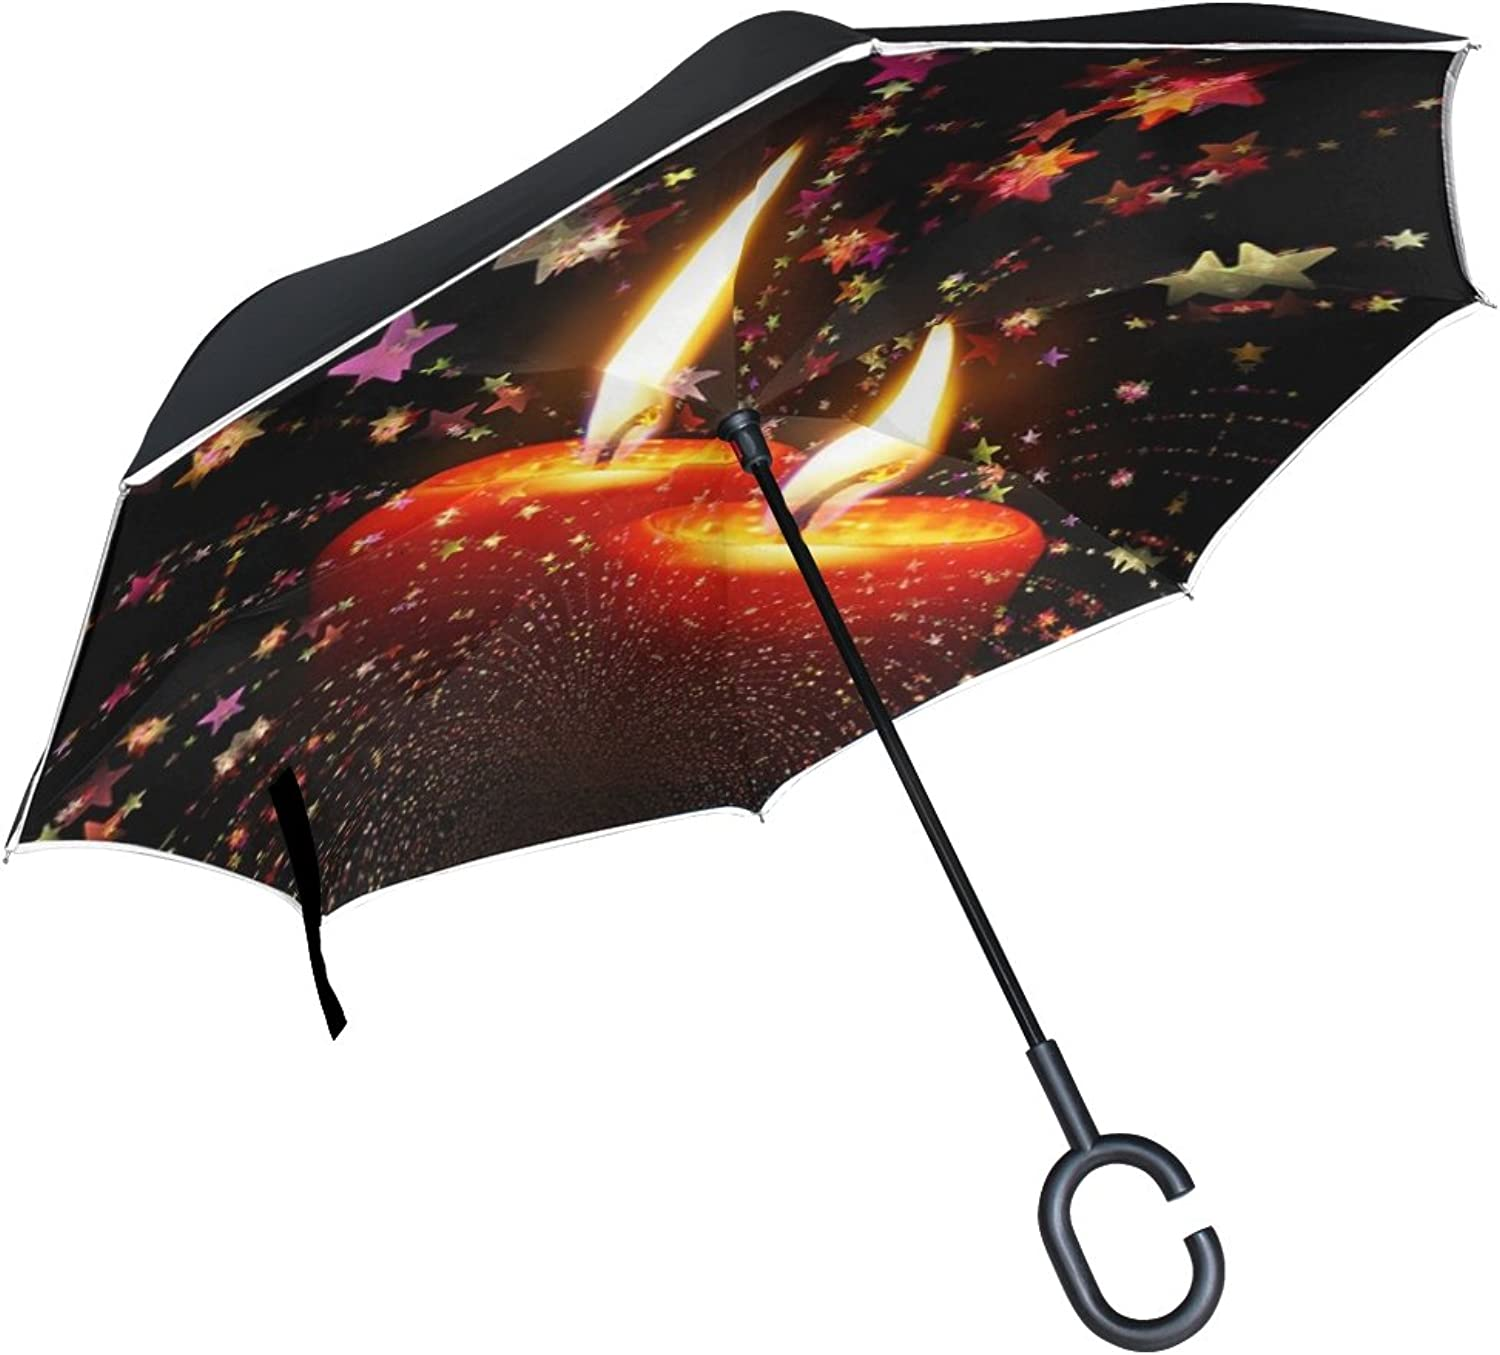 Double Layer Ingreened Candles Christmas Advent Light Burn Advent Wreath Umbrellas Reverse Folding Umbrella Windproof Uv Predection Big Straight Umbrella for Car Rain Outdoor with CShaped Handle